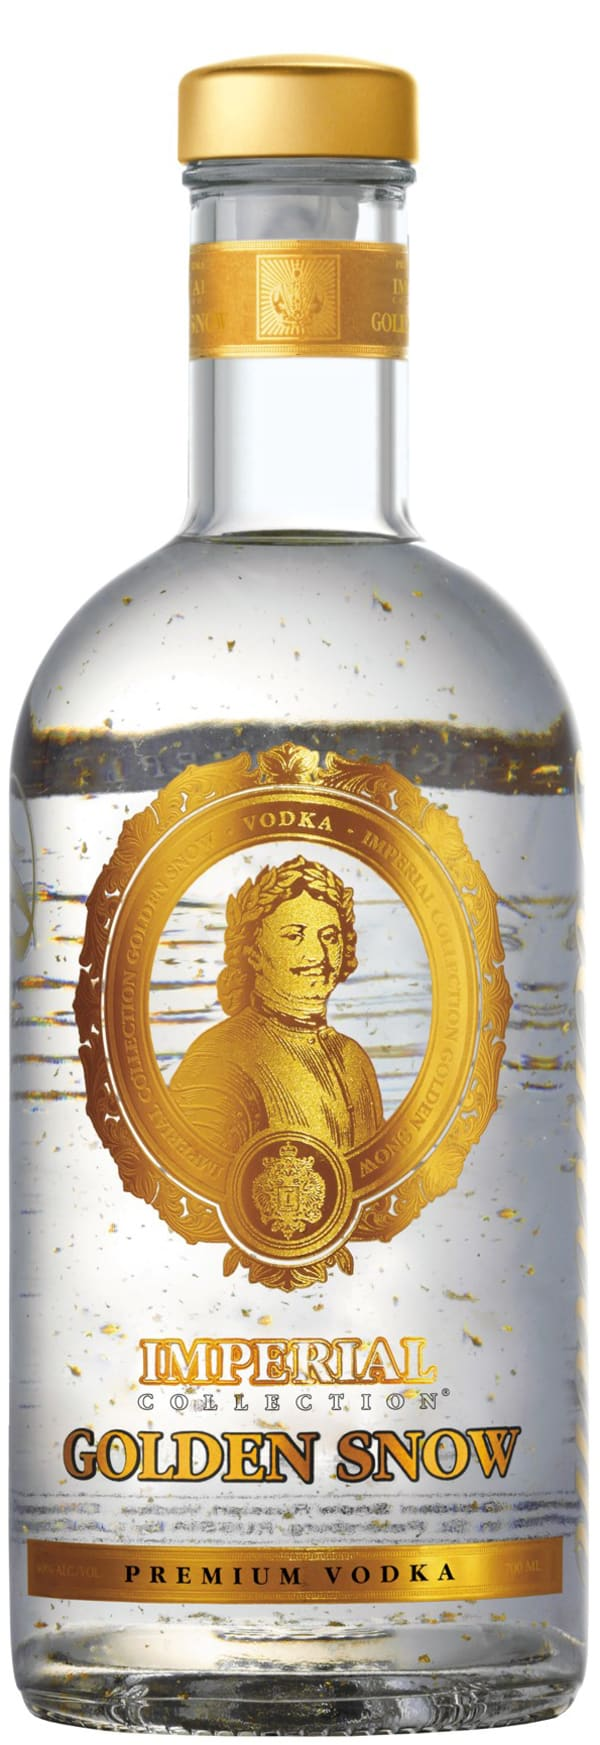 Imperial Golden Snow Vodka